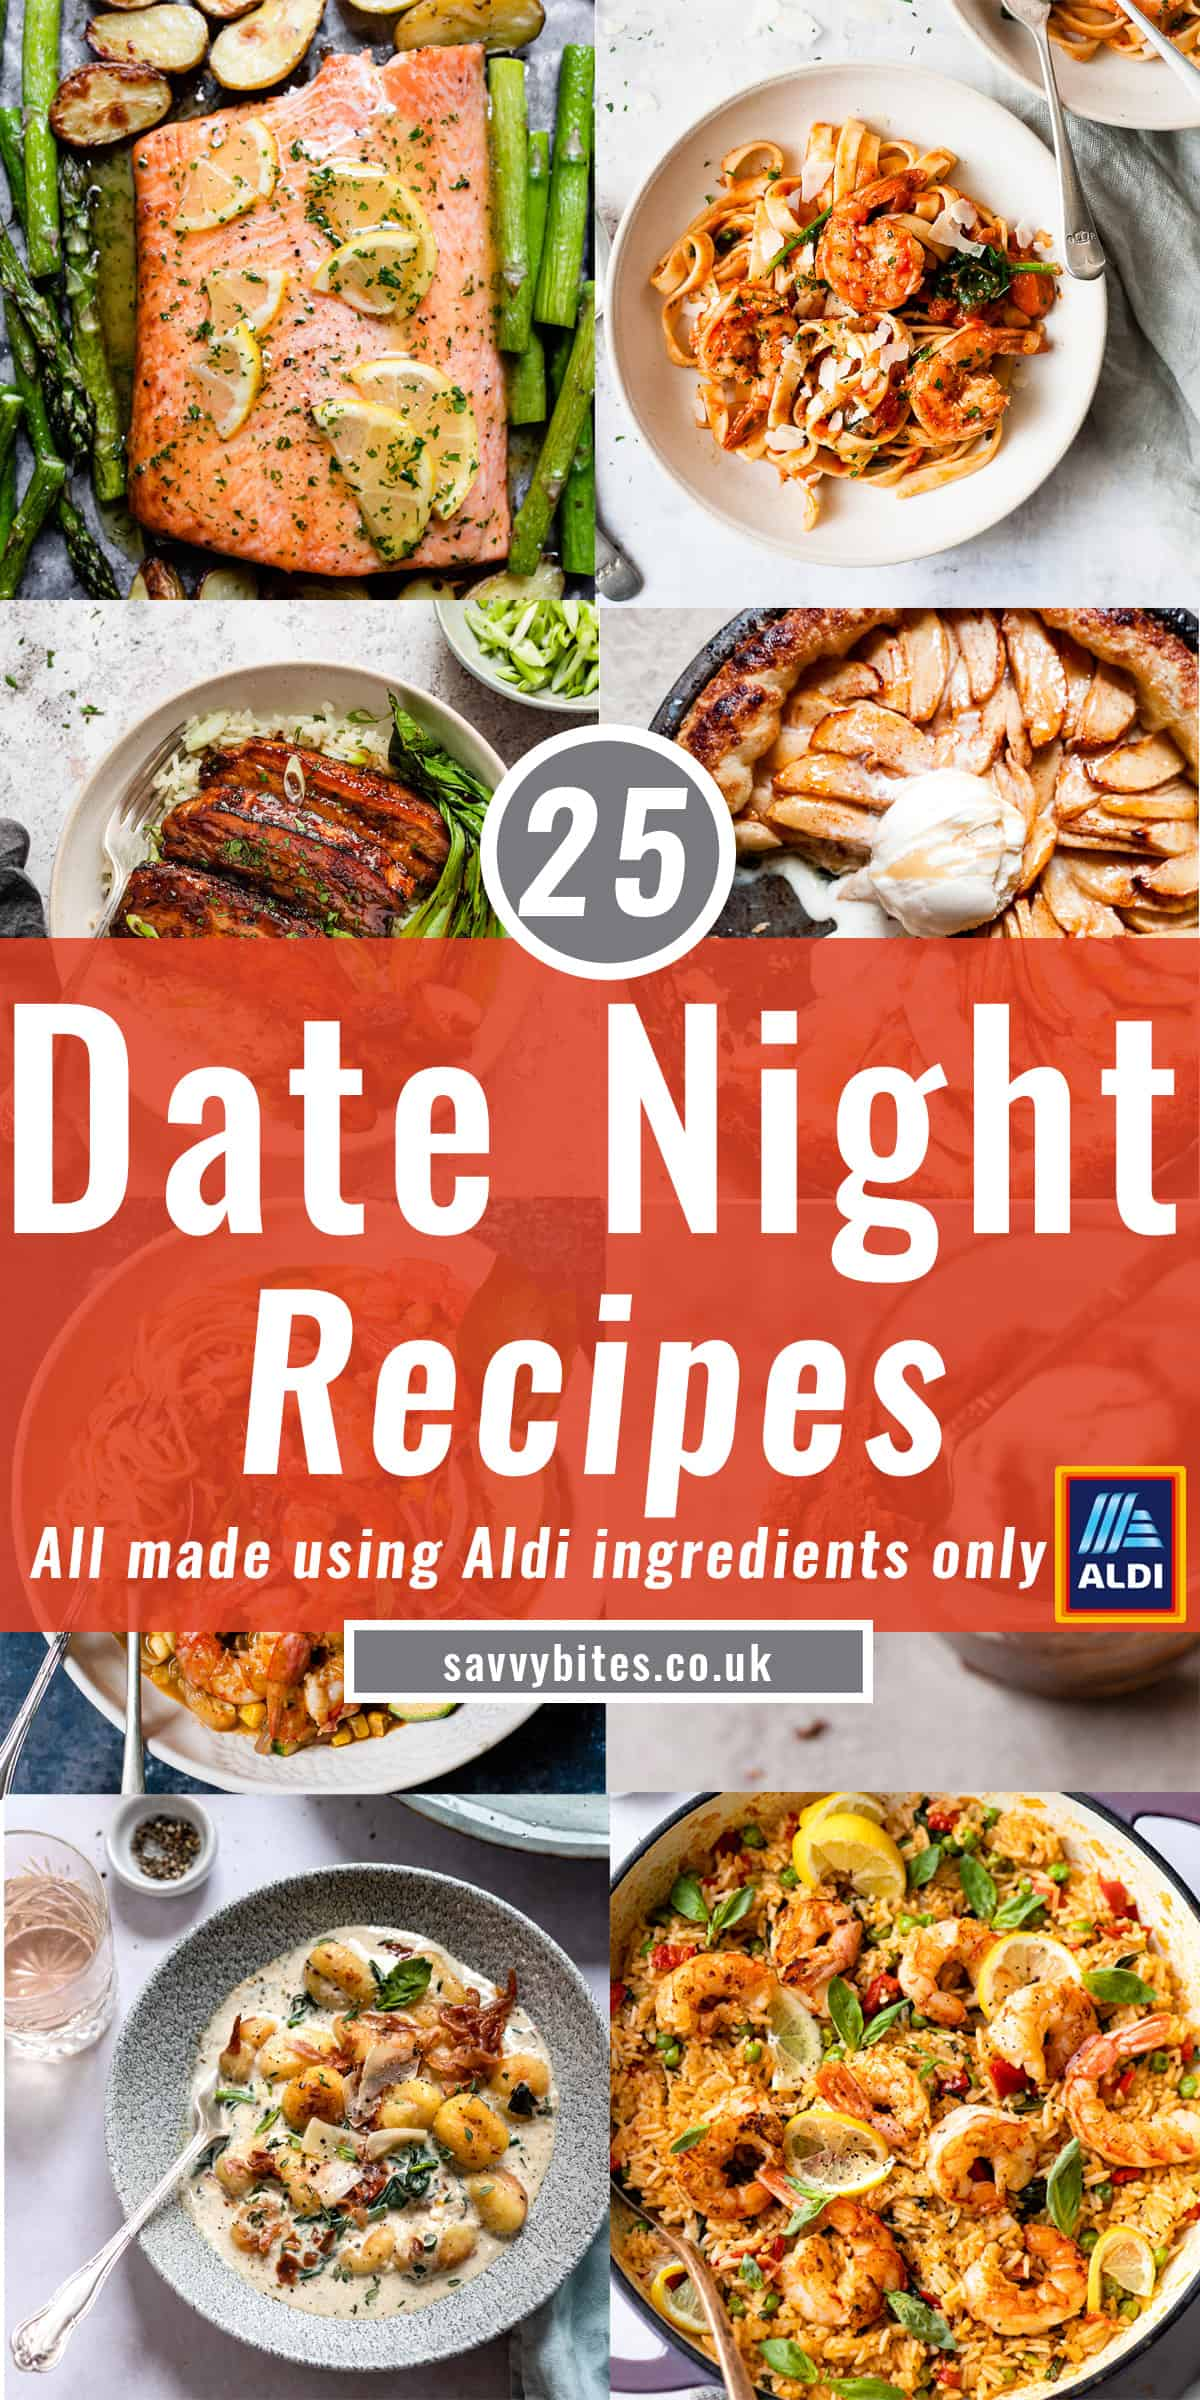 Easy date night recipes in a collage with text overlay.